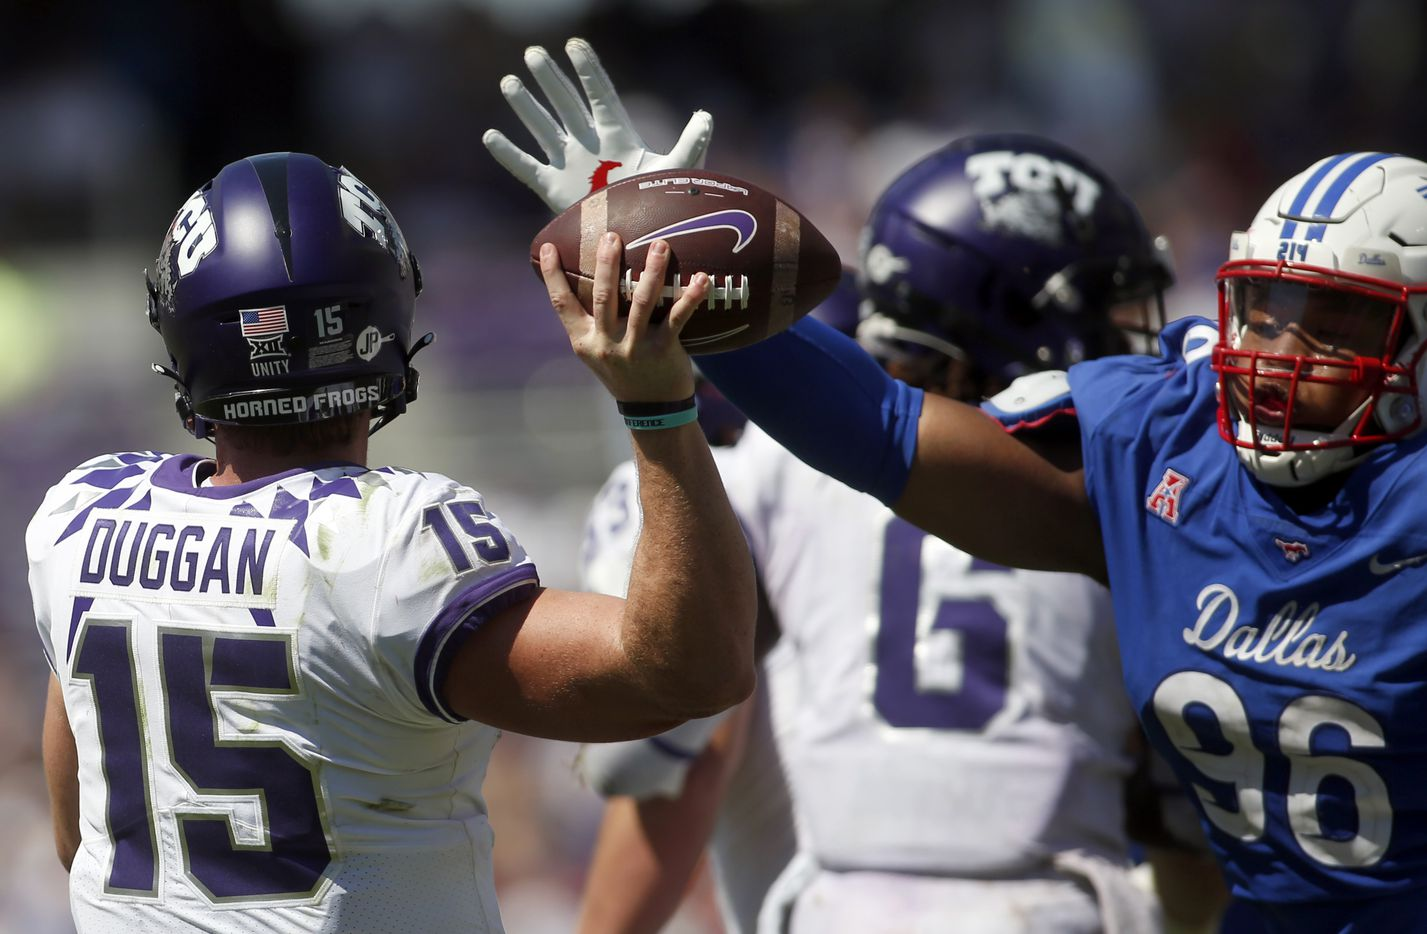 TCU quarterback Max Duggan (15) narrowly missed getting this pass blocked by SMU defensive tackle DeVere Levelston (96) during 4th quarter action. SMU won 42-34. The two teams played their NCAA football game at Amon G. Carter Stadium on the campus of TCU in Fort Worth on September 25, 2021. (Steve Hamm/ Special Contributor)